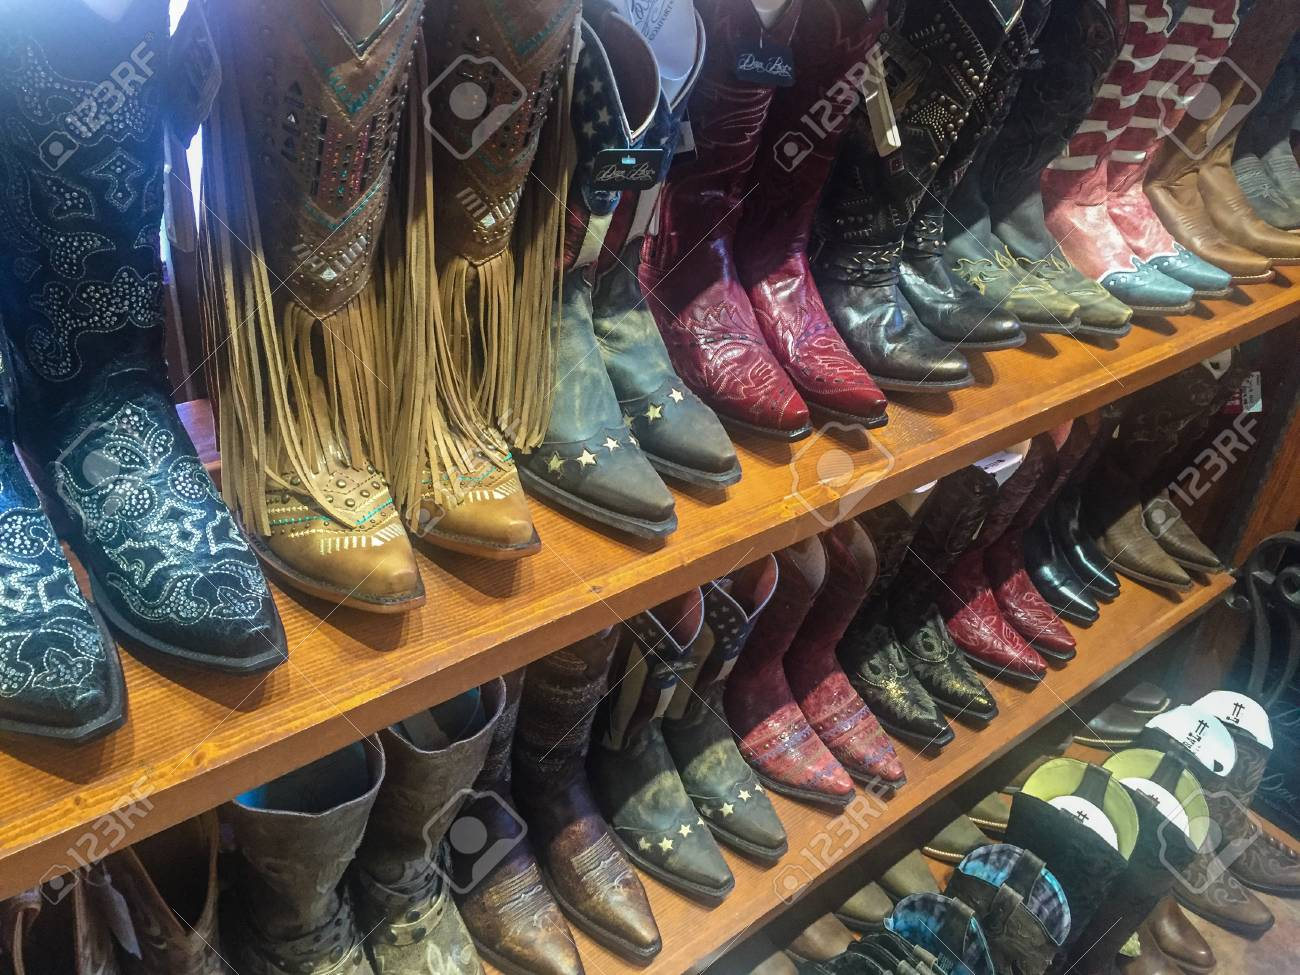 685ab60ff7c Rows of cowboy boots on shelf in store in Dallas, Texas Stock Photo -  60198802